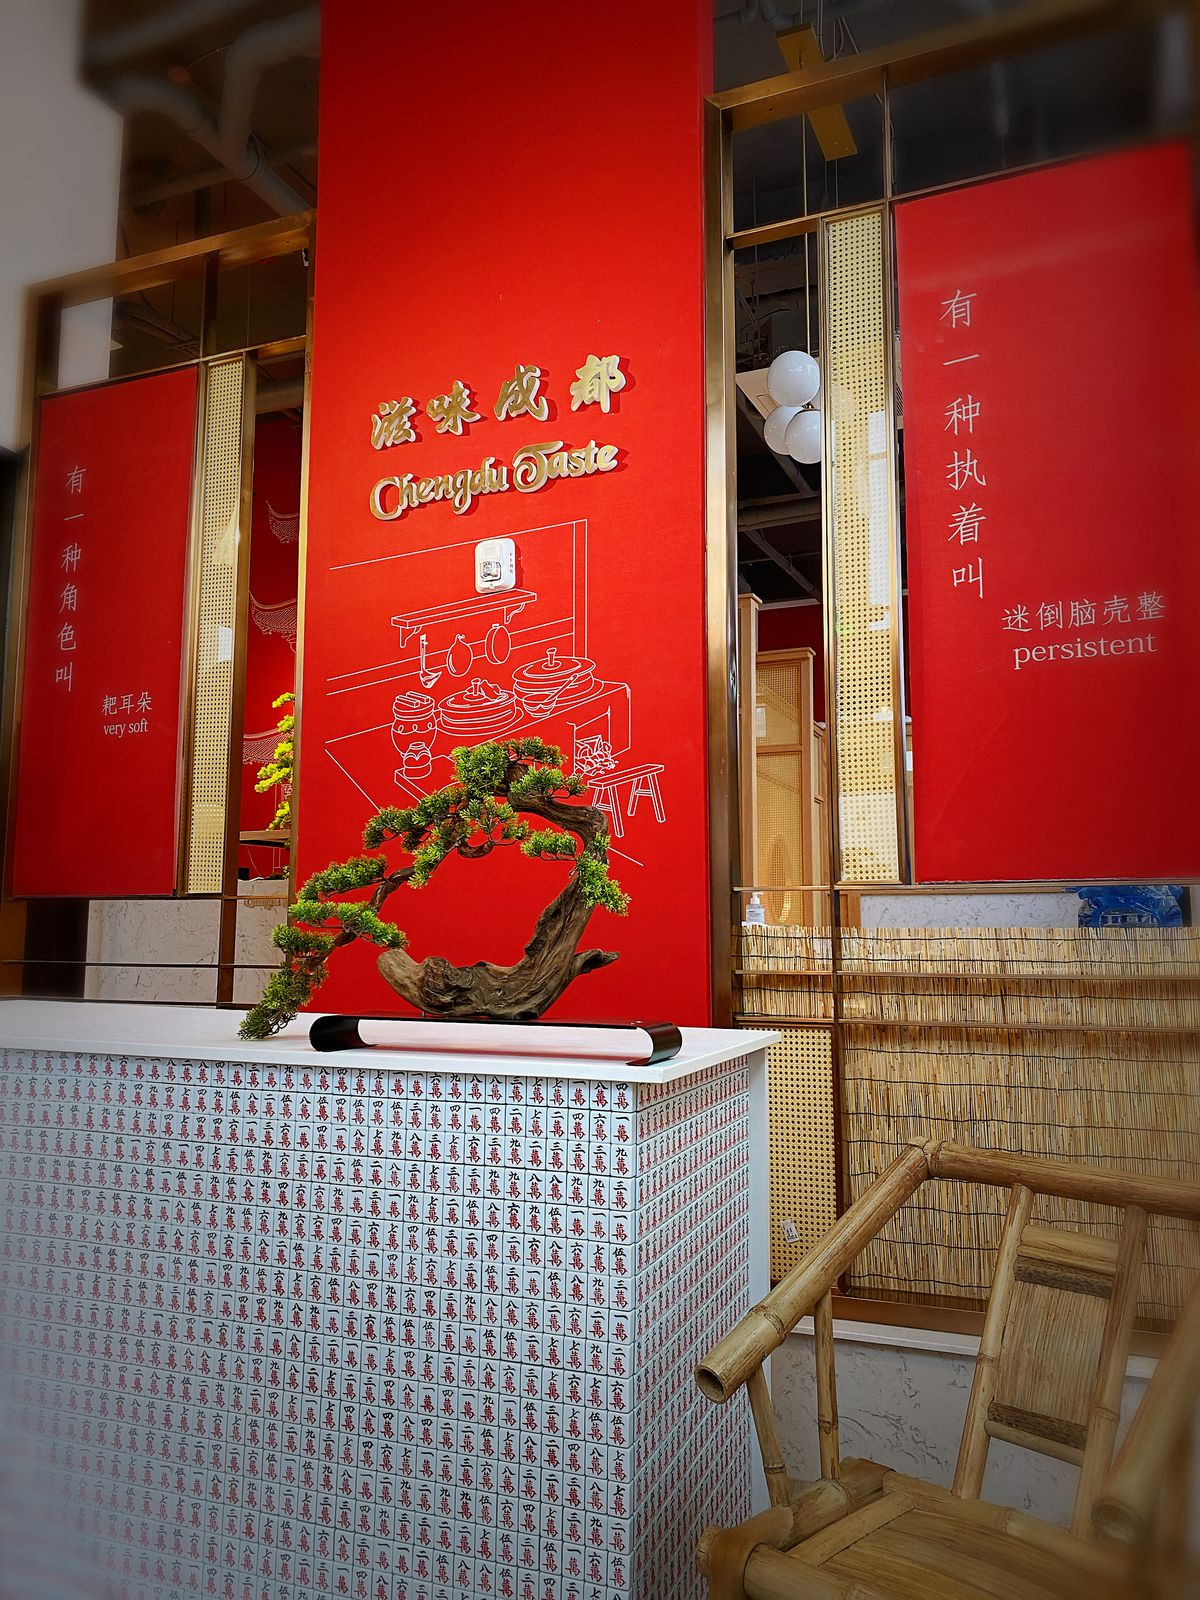 The front of Chengdu Taste, with the restaurant's sign embossed in gold against a red background, with Chinese lettering below it